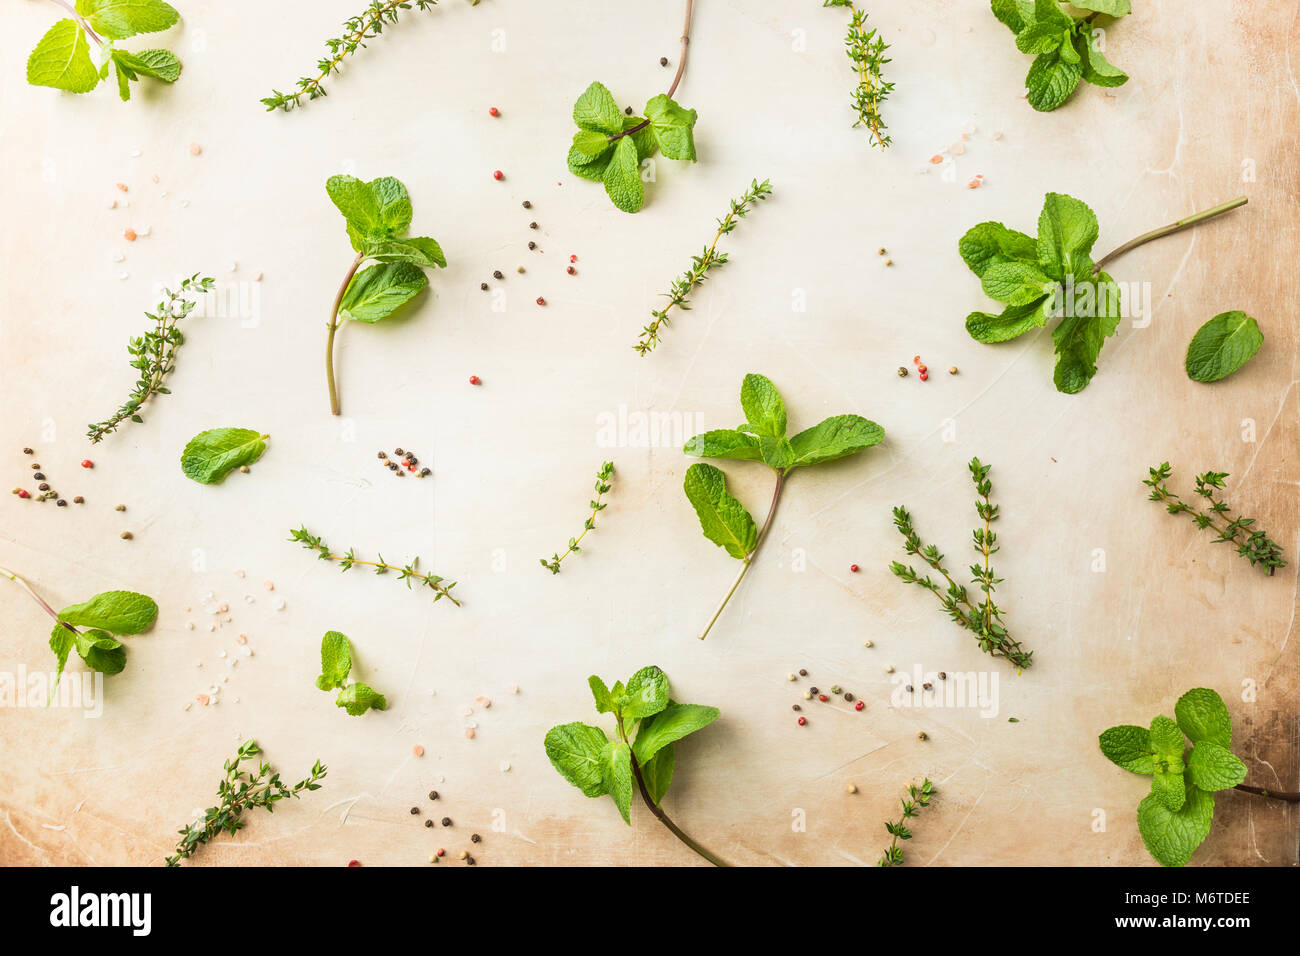 Flat Lay Pattern Of Fresh Green Herbs Mint And Thyme Top View Stock Photo Alamy